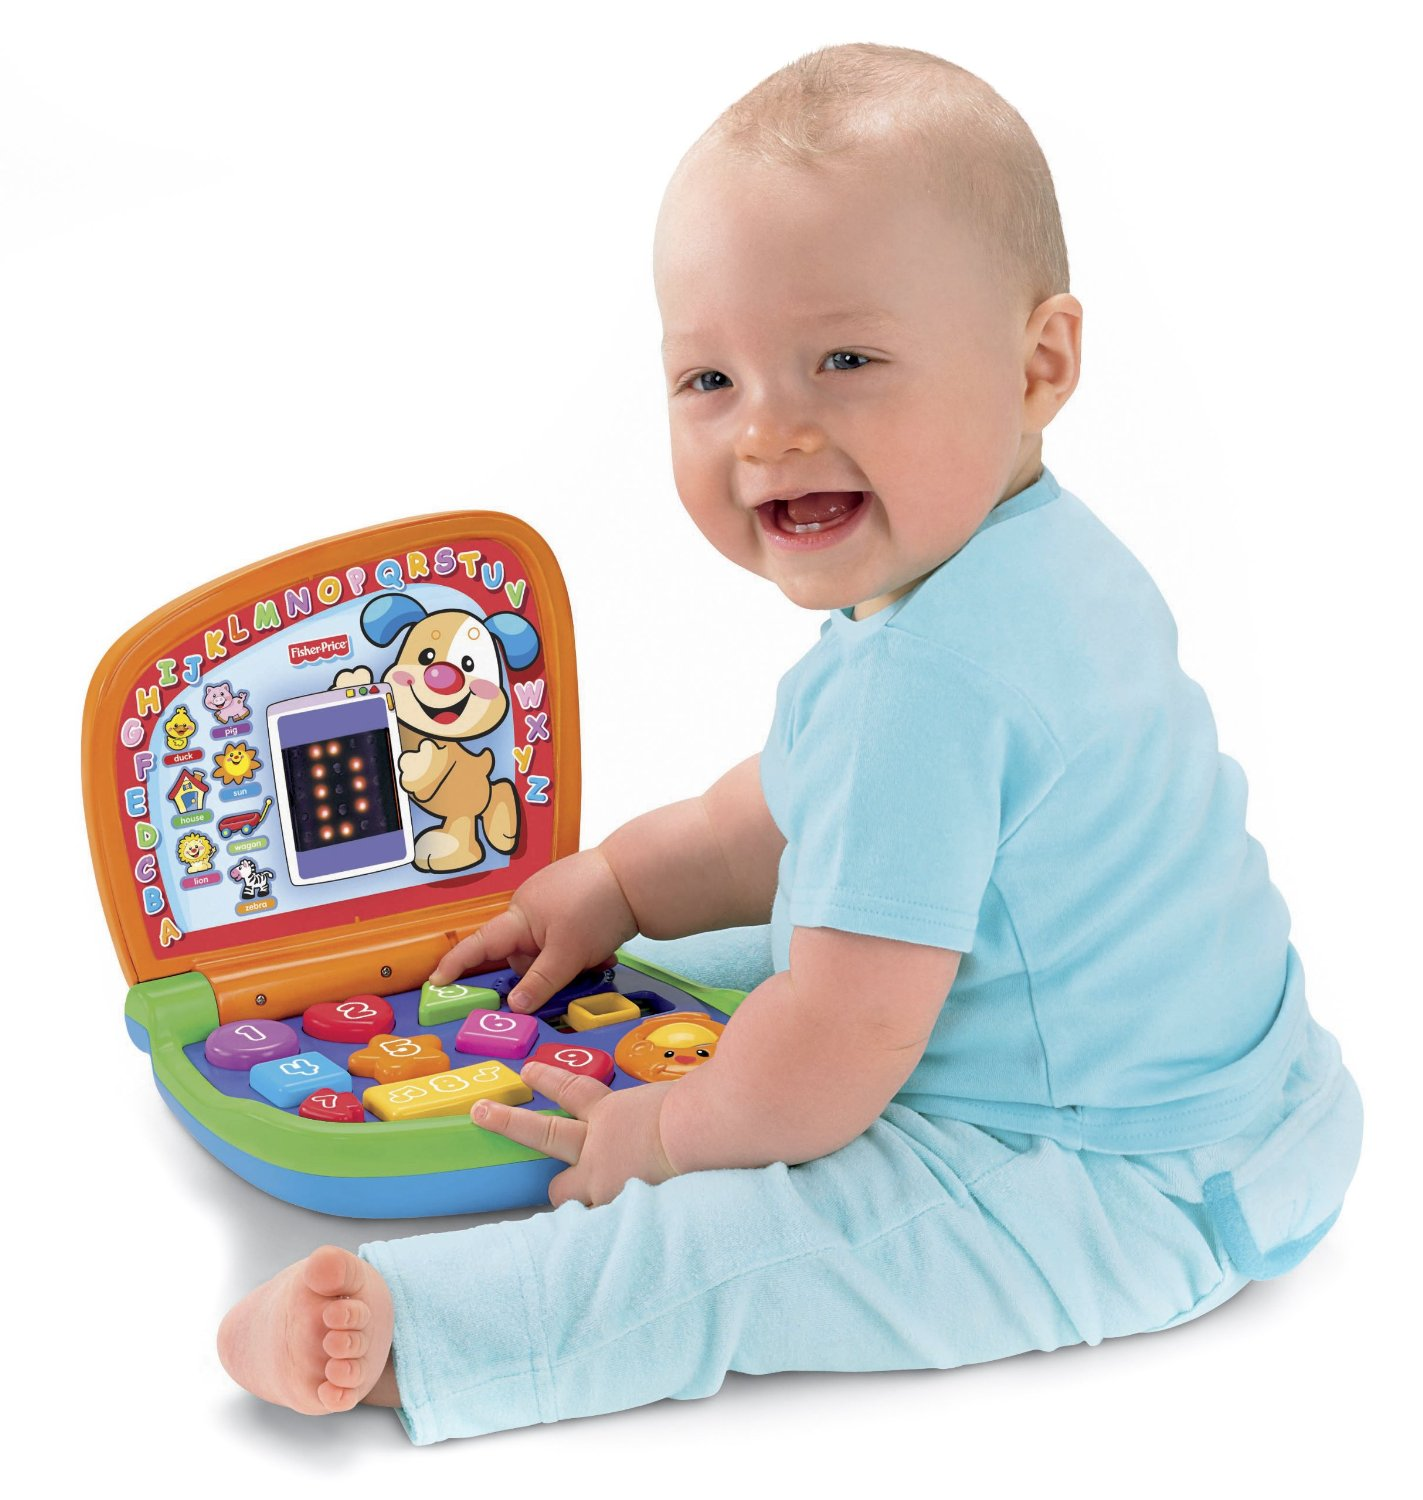 Toys For 3 Month Olds : Toys for babies by age to month old